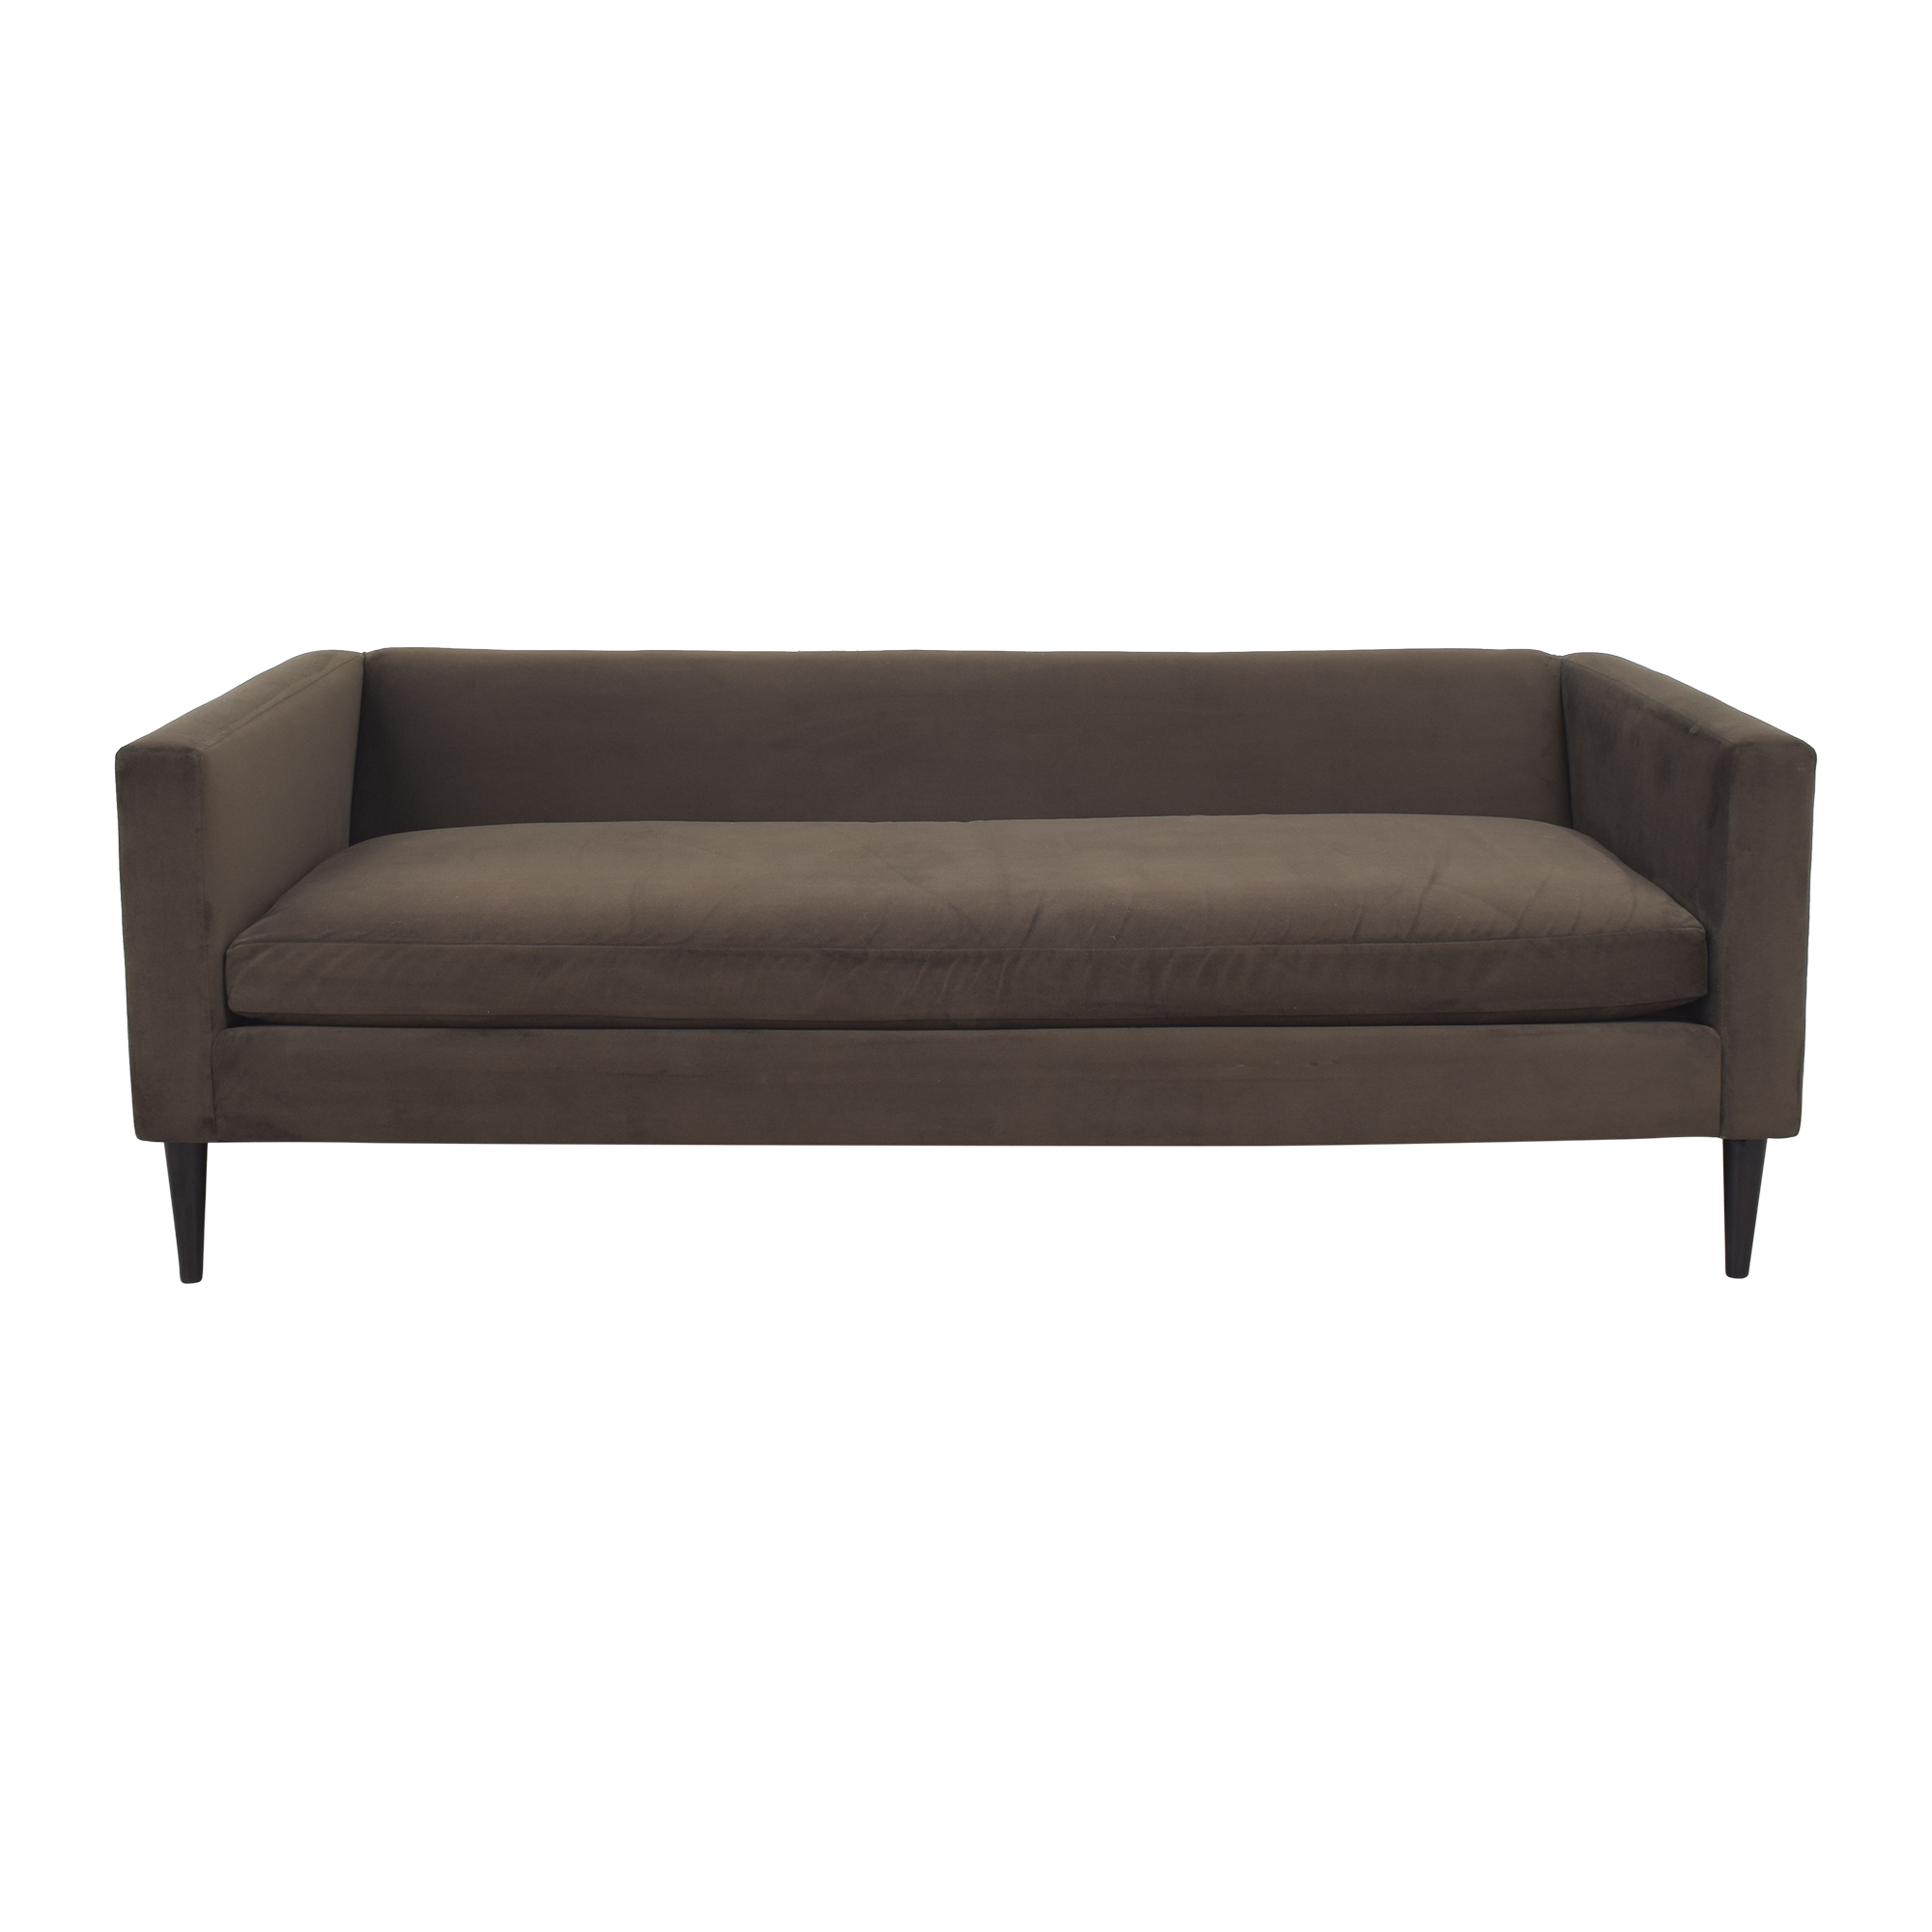 CB2 CB2 Bench Cushion Sofa with Pillows dimensions